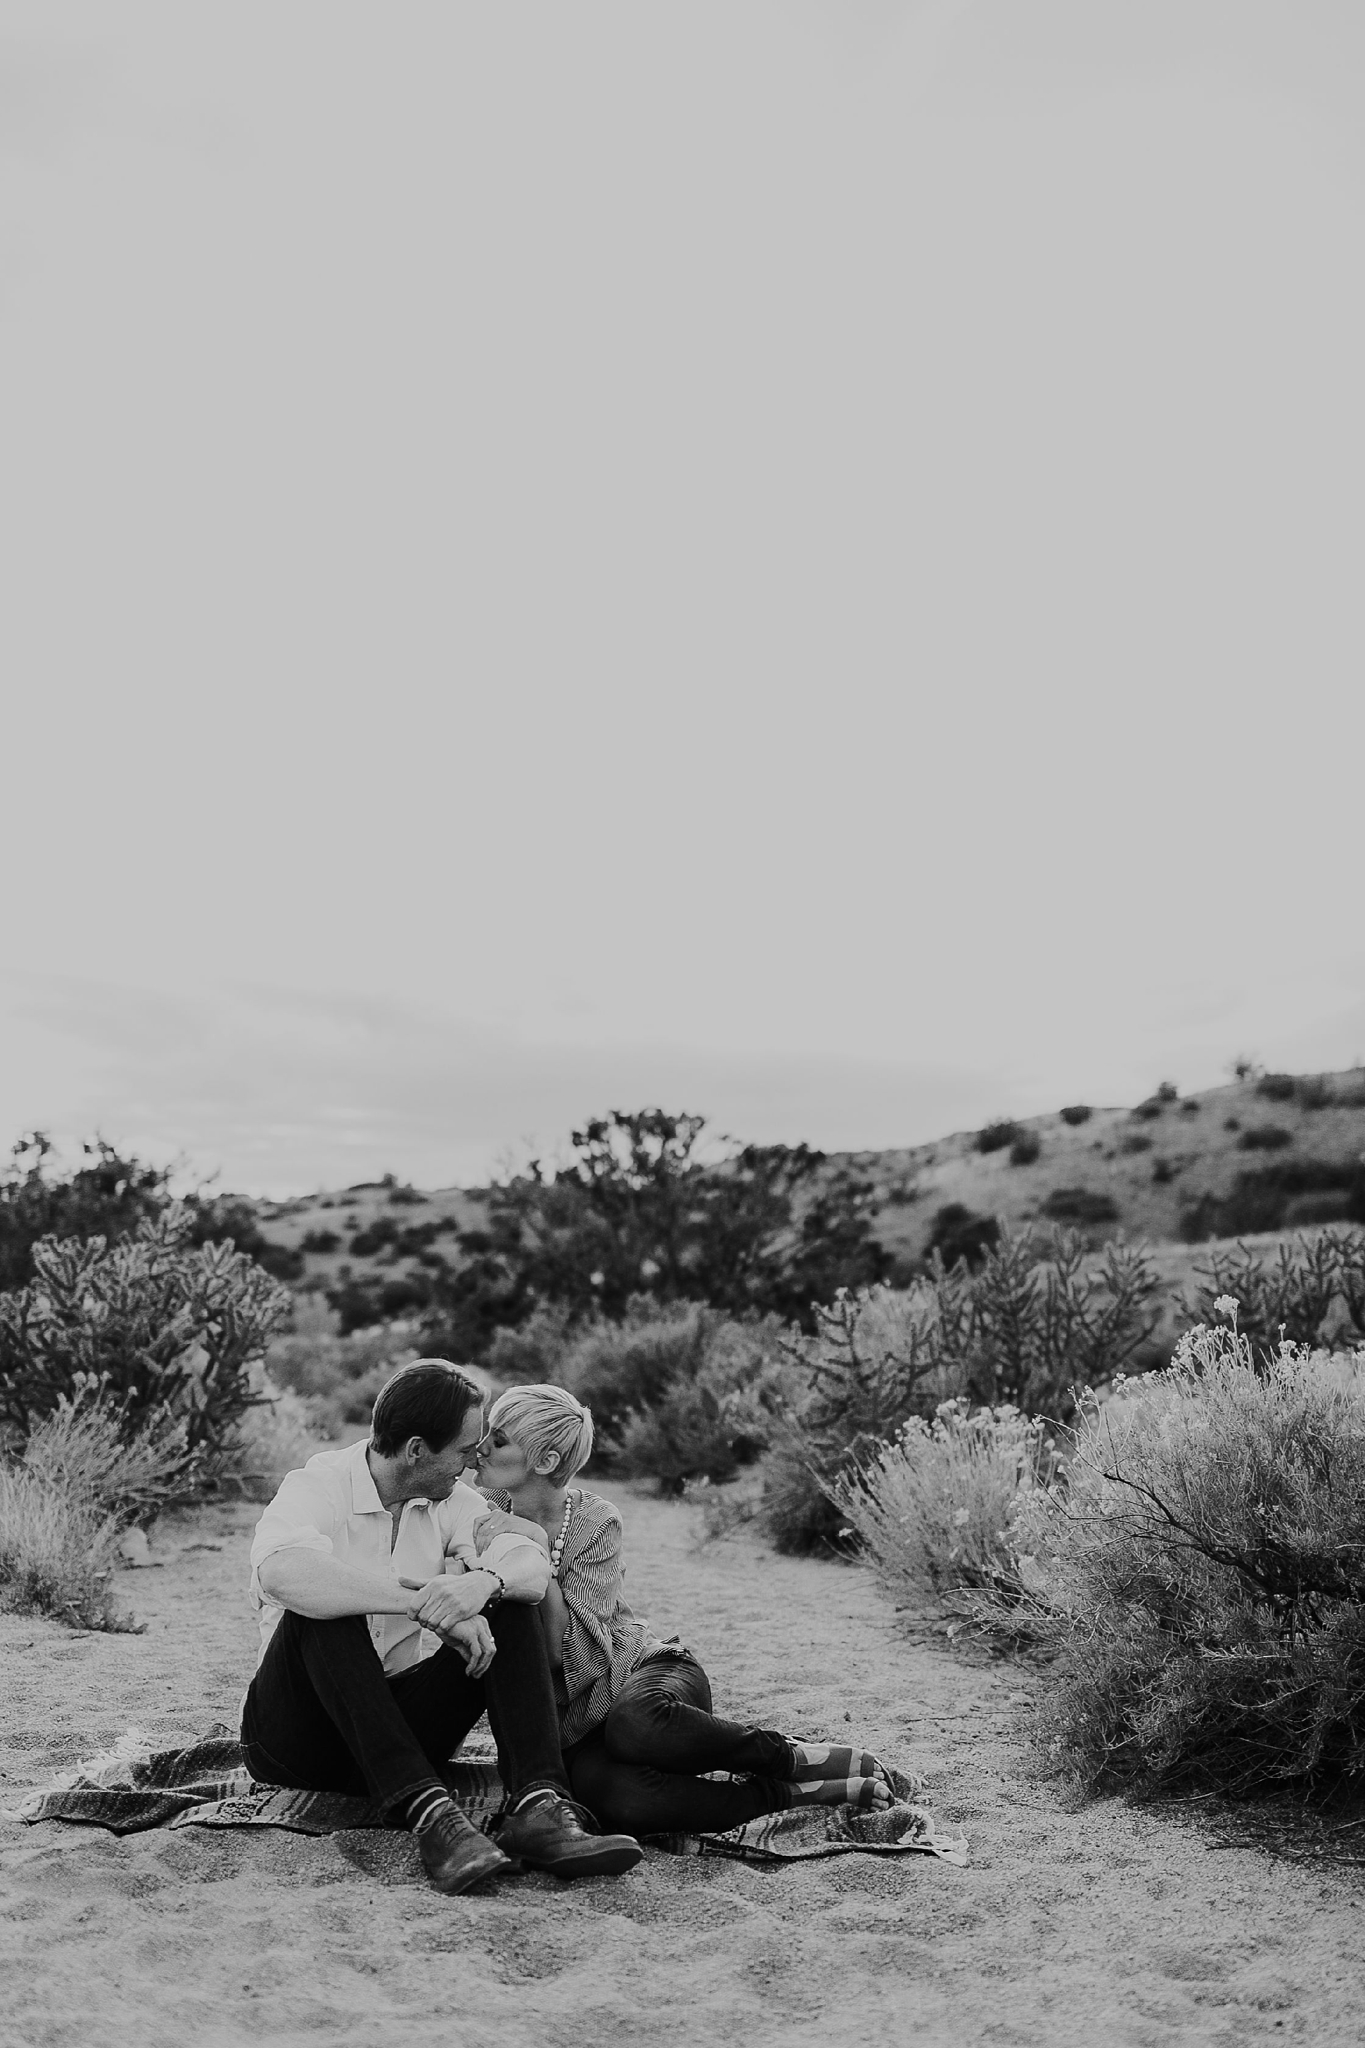 Alicia+lucia+photography+-+albuquerque+wedding+photographer+-+santa+fe+wedding+photography+-+new+mexico+wedding+photographer+-+new+mexico+wedding+-+engagement+-+new+mexico+engagement+-+desert+engagement+-+albuquerque+engagement_0026.jpg